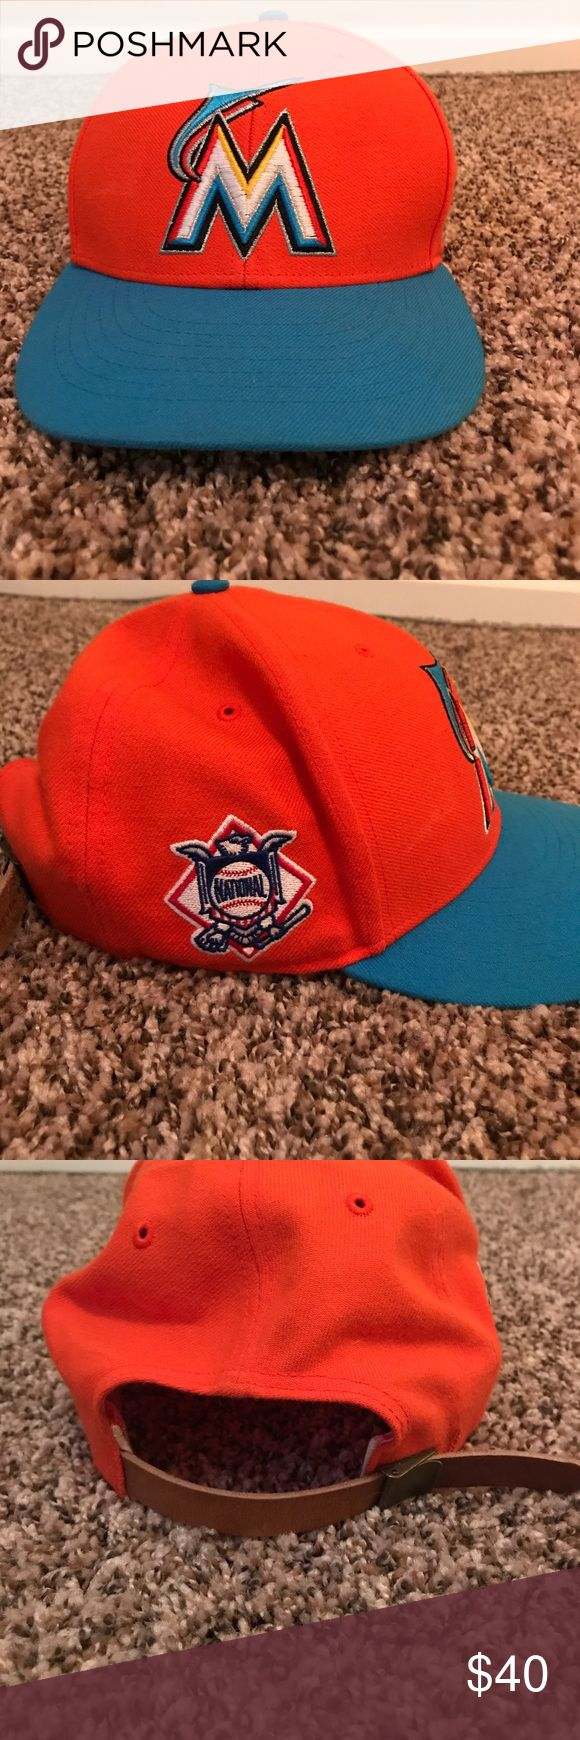 Miami Marlins Leather strap back Miami marlins limited edition strap back '47 hat Accessories Hats